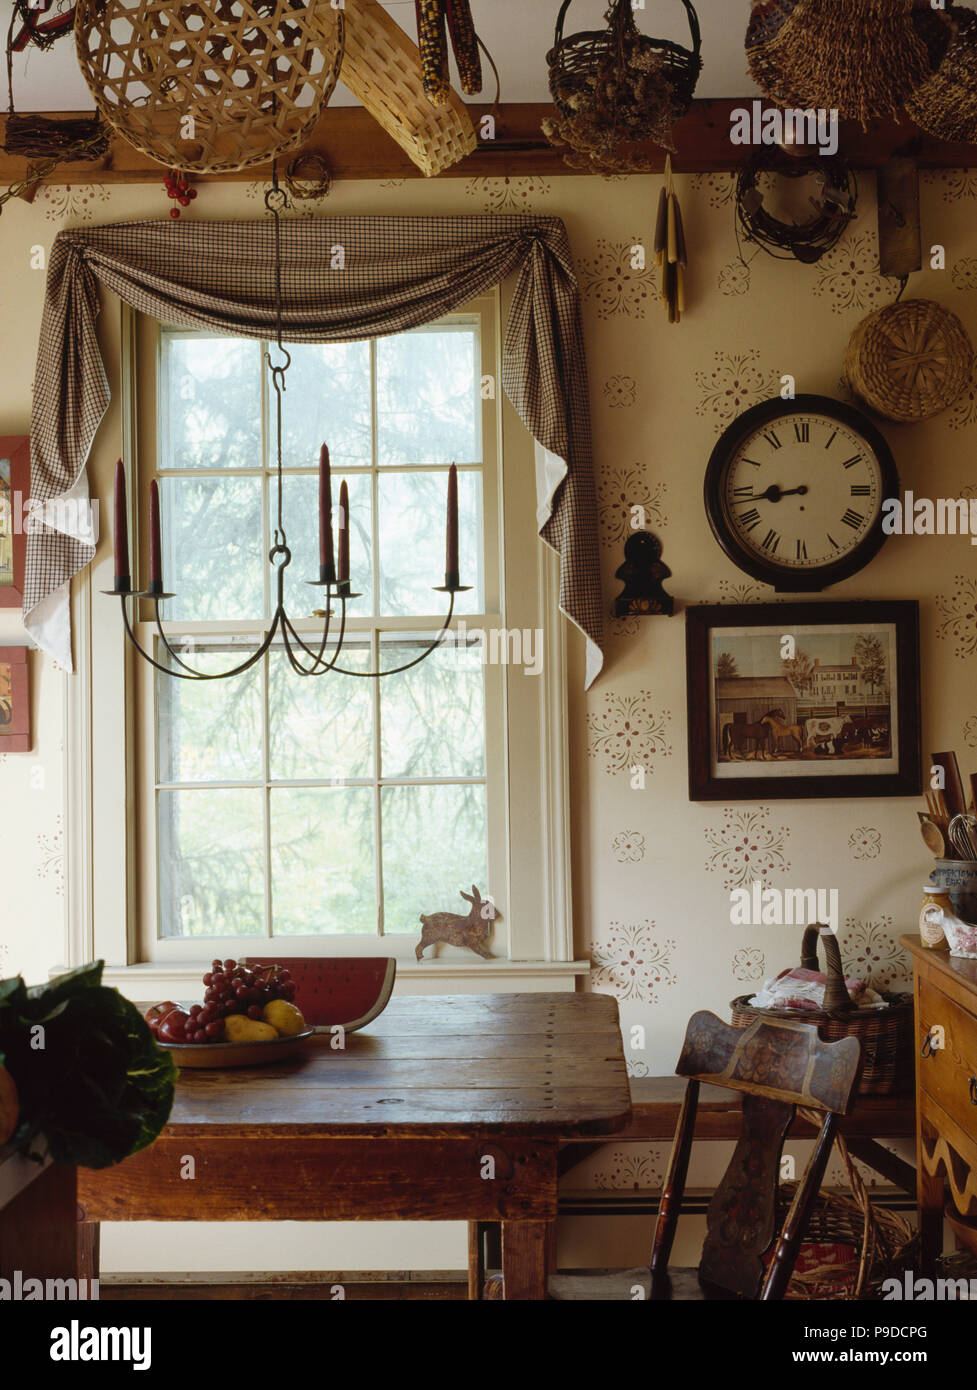 Magnificent Checked Fabric Draped Above Window In American Colonial Download Free Architecture Designs Rallybritishbridgeorg